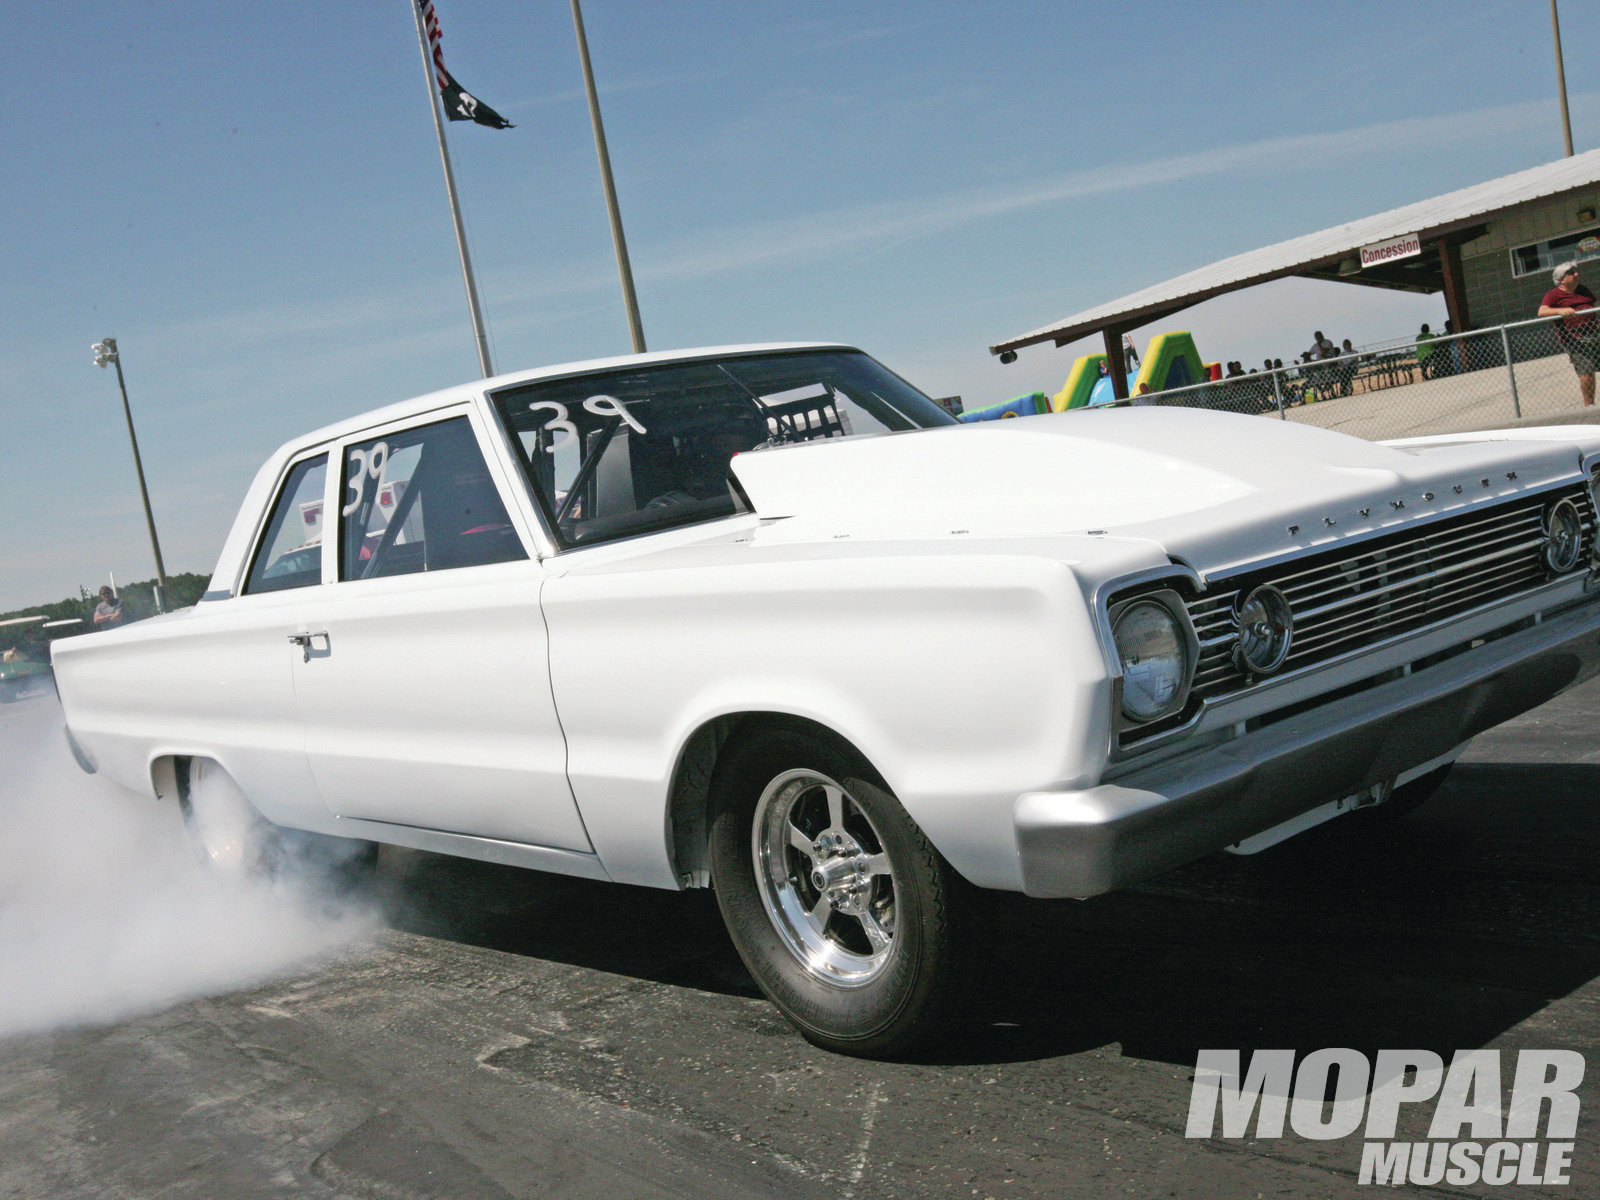 Who says the feature cars are trailer queens? Terry Brown's Belvedere is featured elsewhere in this issue and runs consistent 9-second e.t.'s. Terry's cohort-in-crime, Darren Tedder, was handling the driving duties at the event.